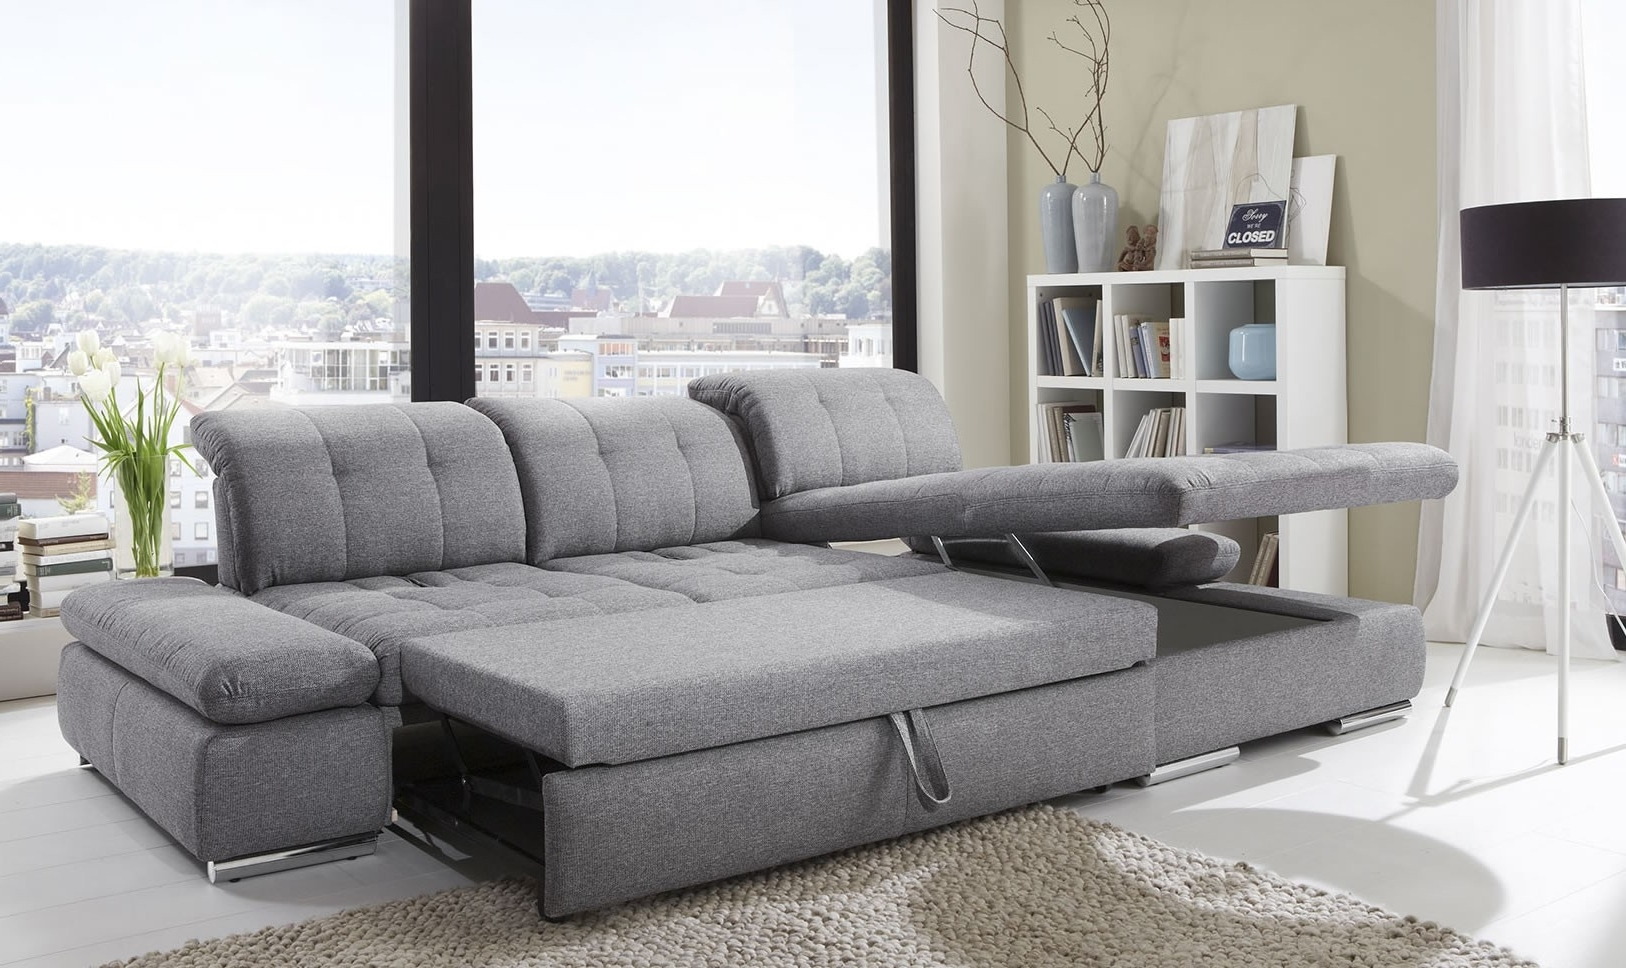 Chaise Sleeper Sofas With Well Known Alpine Sectional Sleeper Sofa, Left Arm Chaise Facing, Black (View 7 of 15)